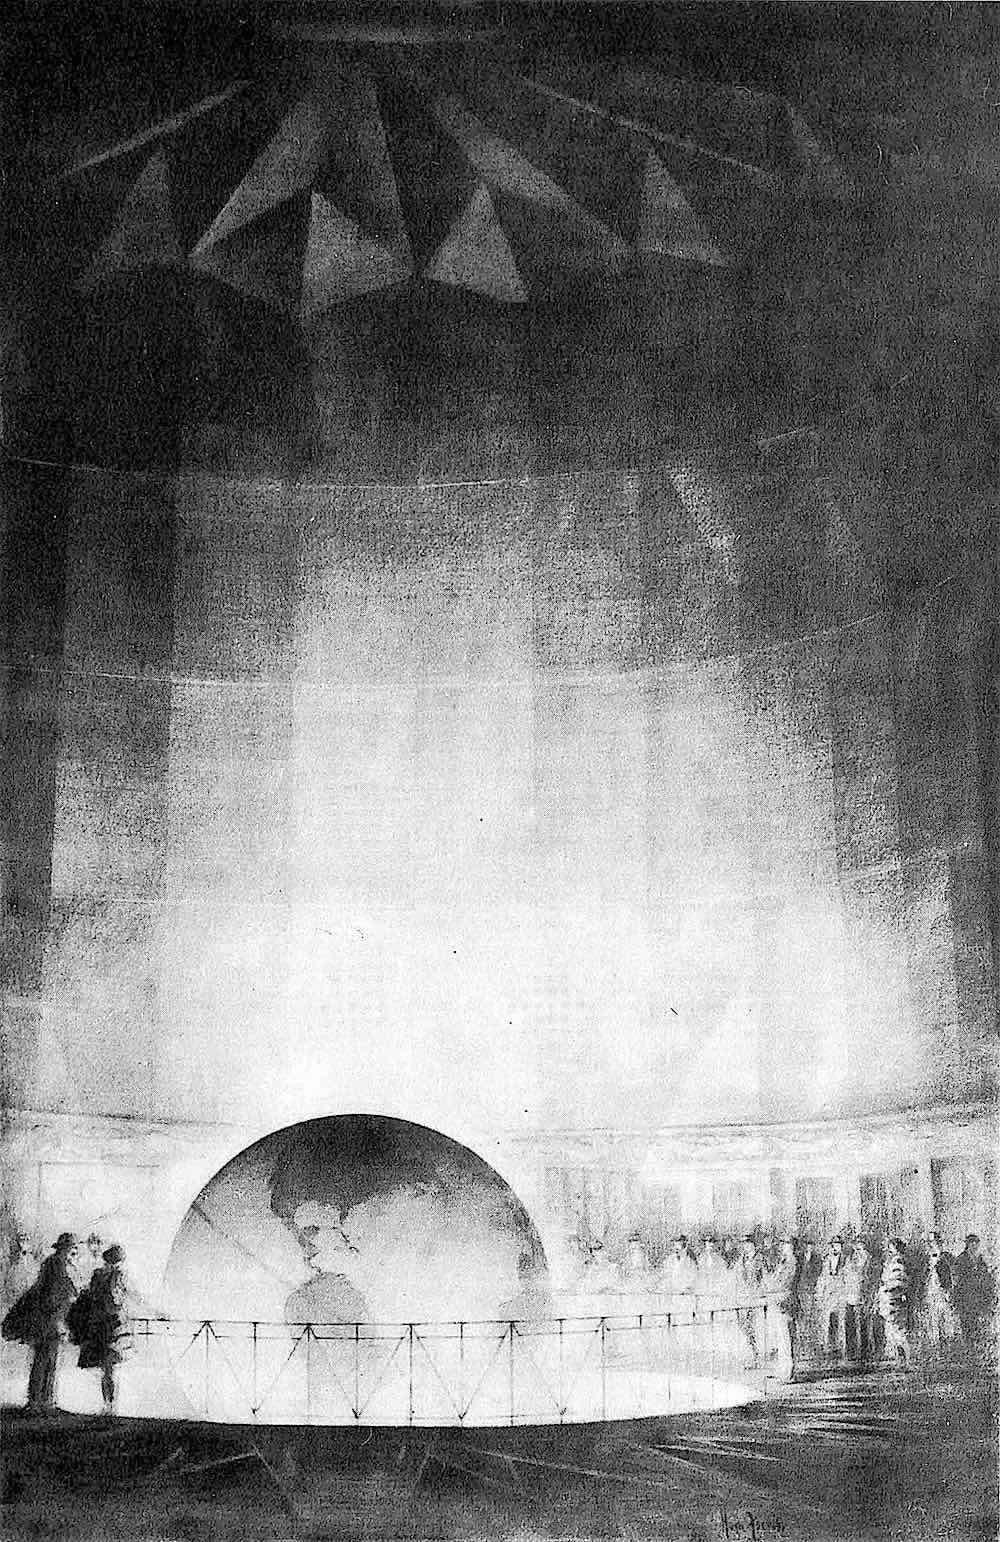 a Hugh Ferriss 1929 drawing of the Daily News Building Globe